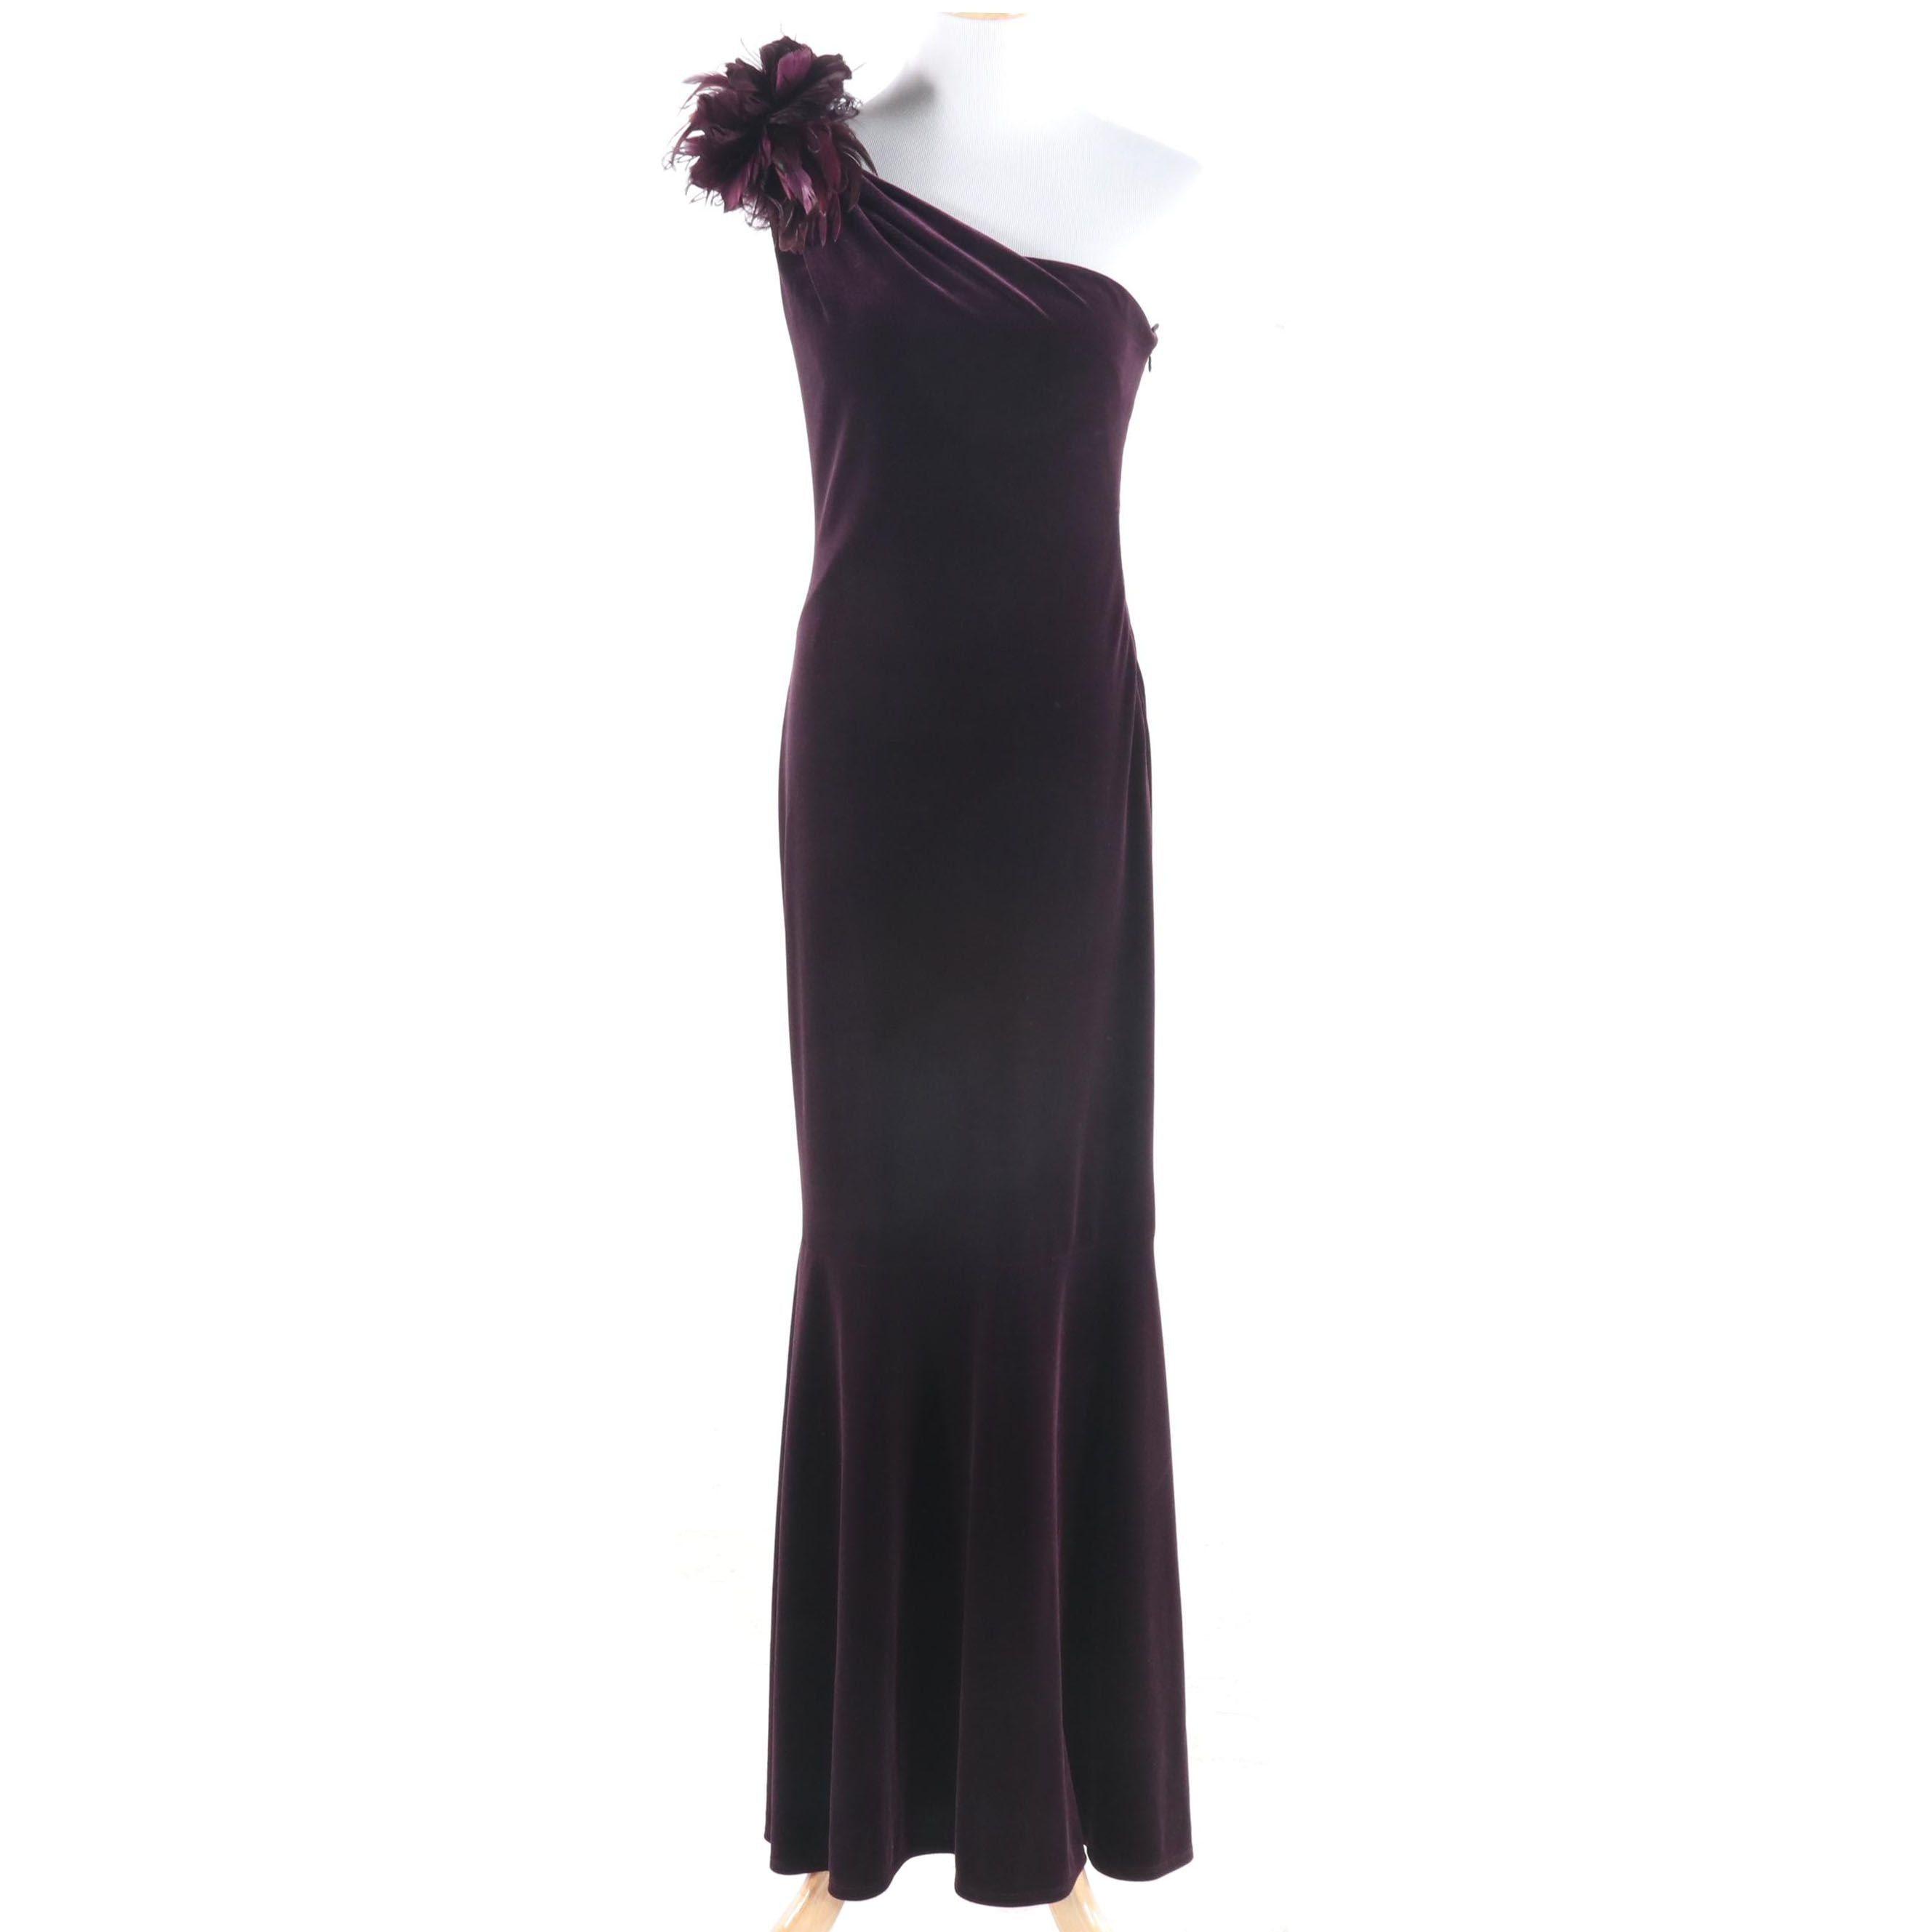 David Meister Aubergine Velour One-Shoulder Gown with Feathers